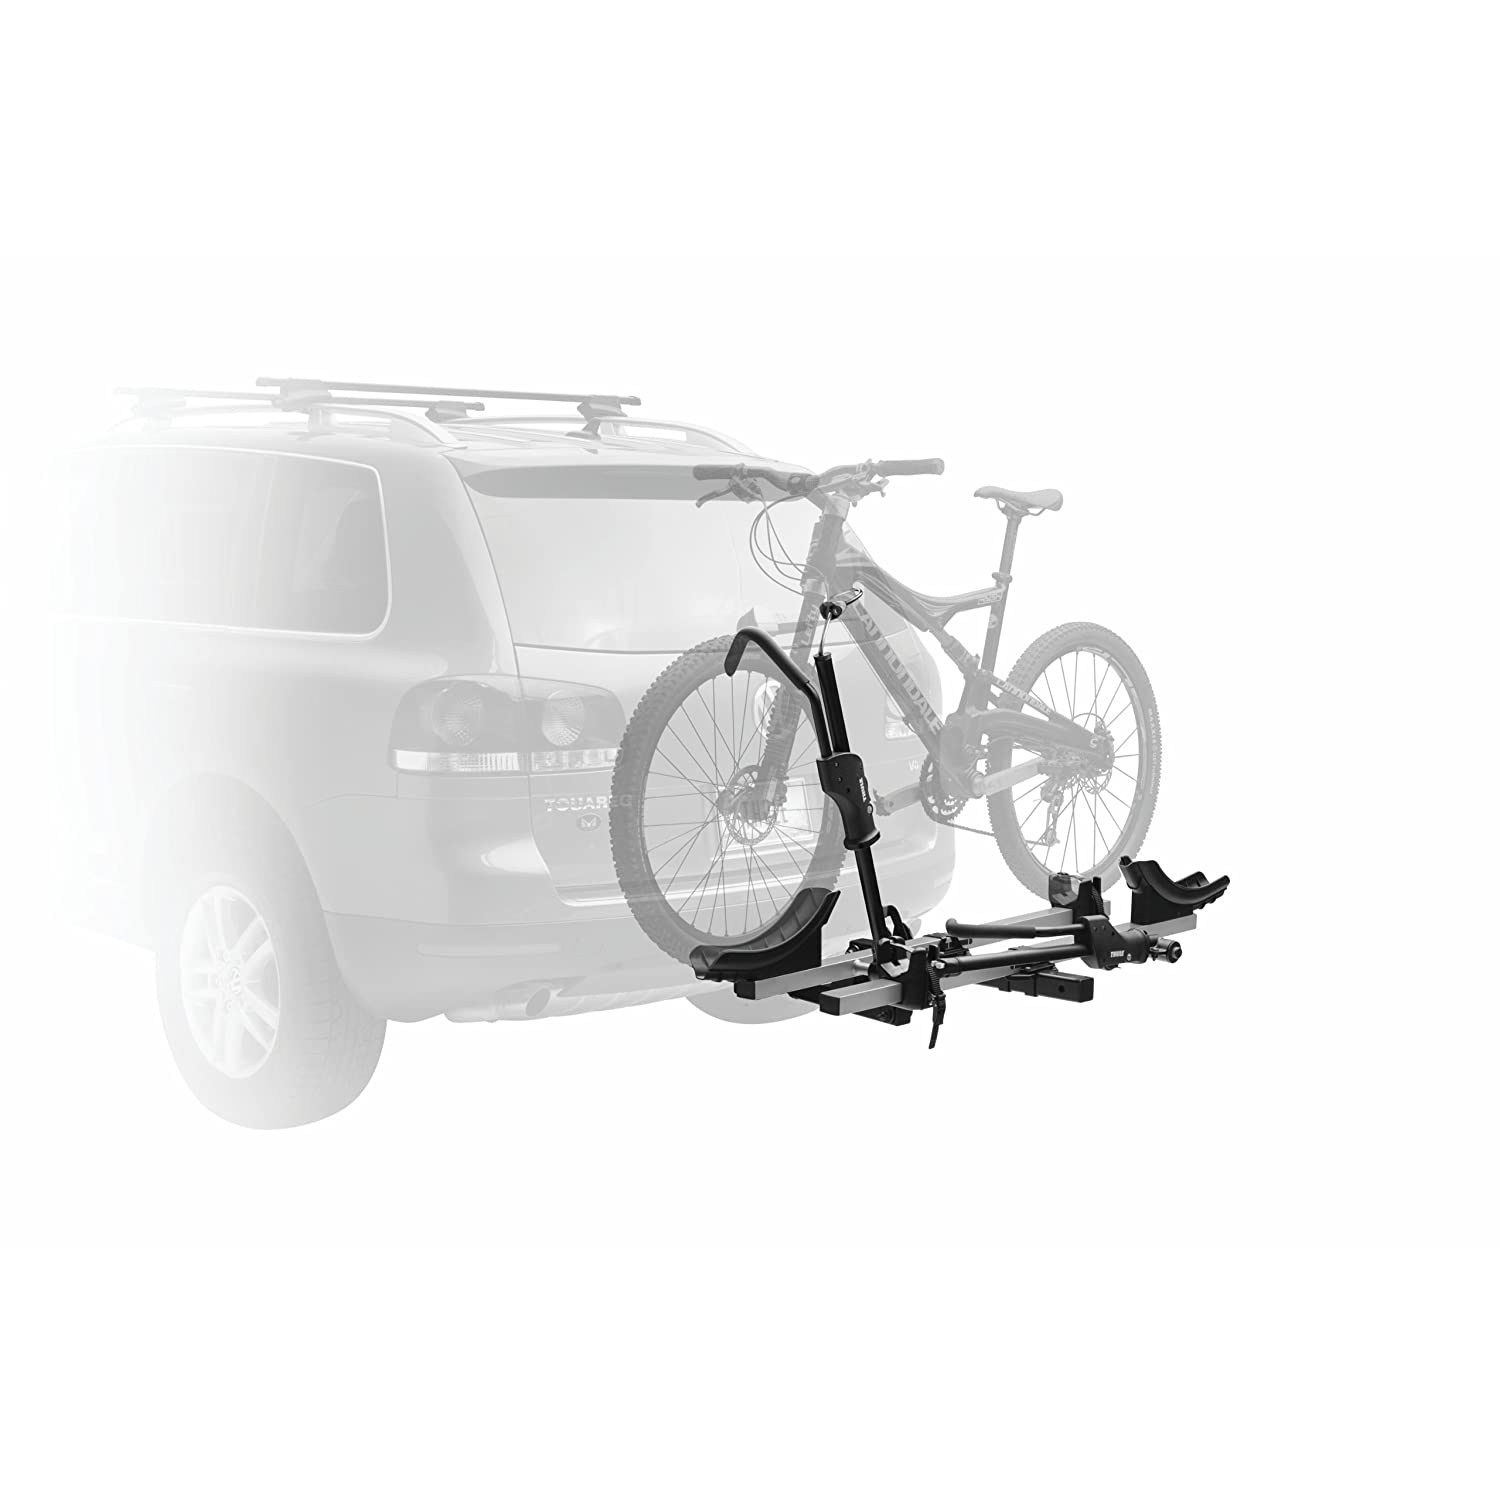 Fs Brand New Thule T2 Bike Rack 2 Hitch Toyota 120 Platforms Forum 1986 Chevrolet Dual Tank Wiring Of Vehicle Access Reinforced Tray Provides Maximum Strength And Rust Free Protection Adjustable Wheel Strap Quickly Secures Backwheel To